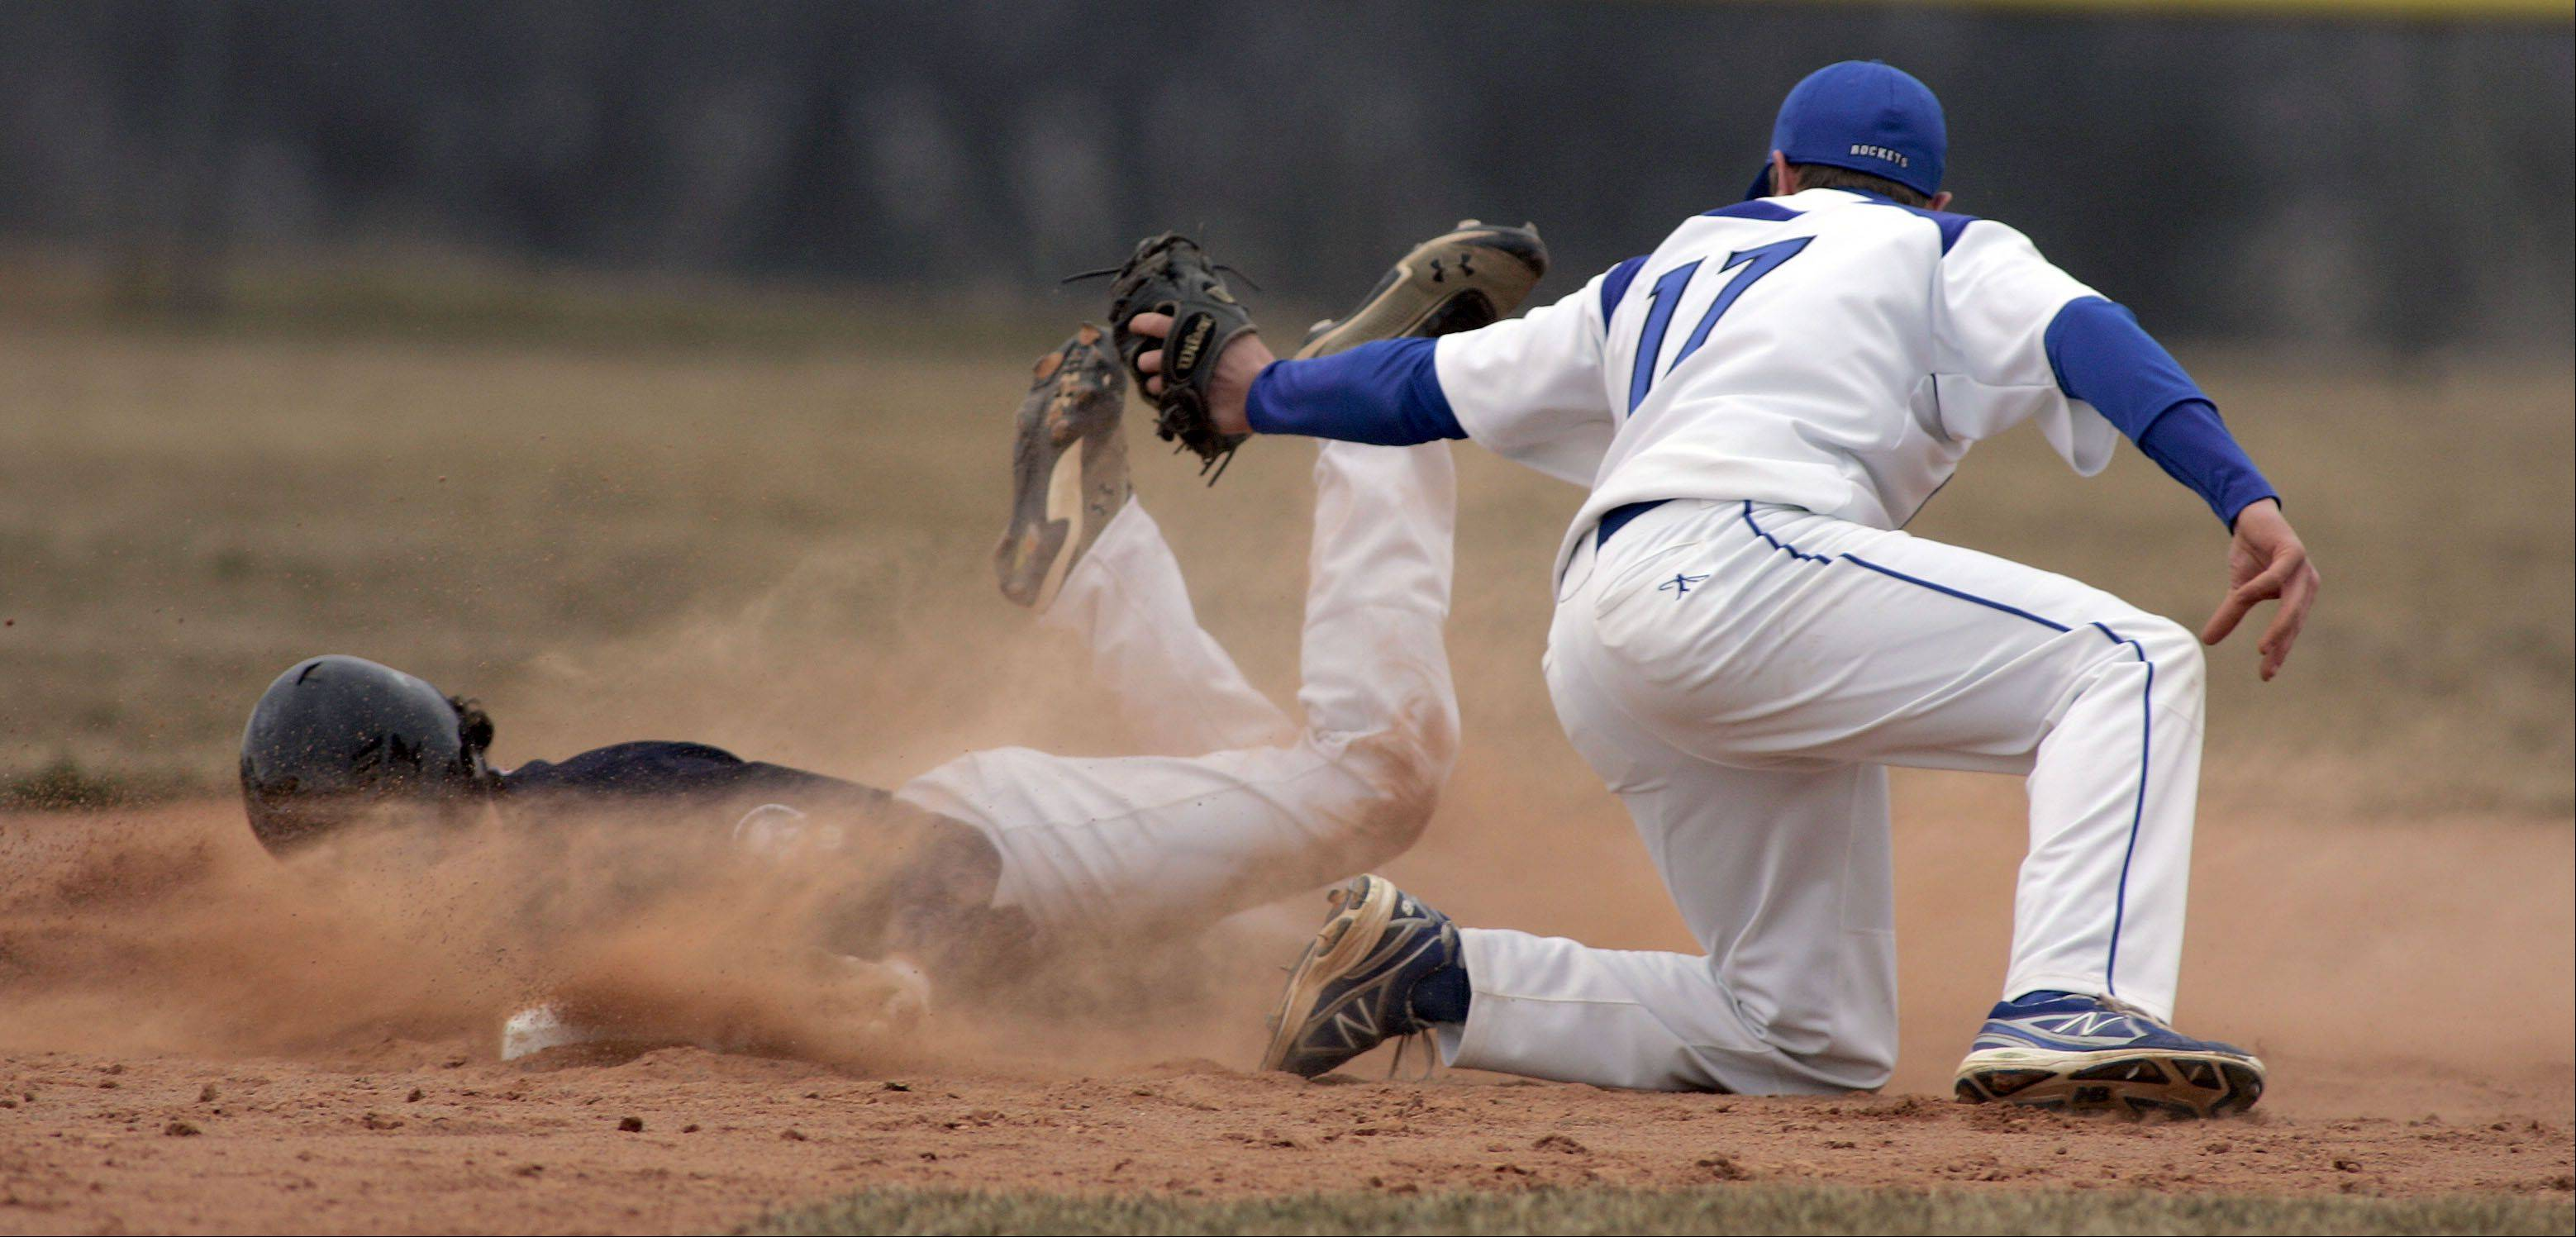 Burlington Central's Drew Wiss puts the tag on Cary-Grove's Dean Christakes as he gets a face full of dirt during Cary-Grove at Burlington Central baseball Saturday.